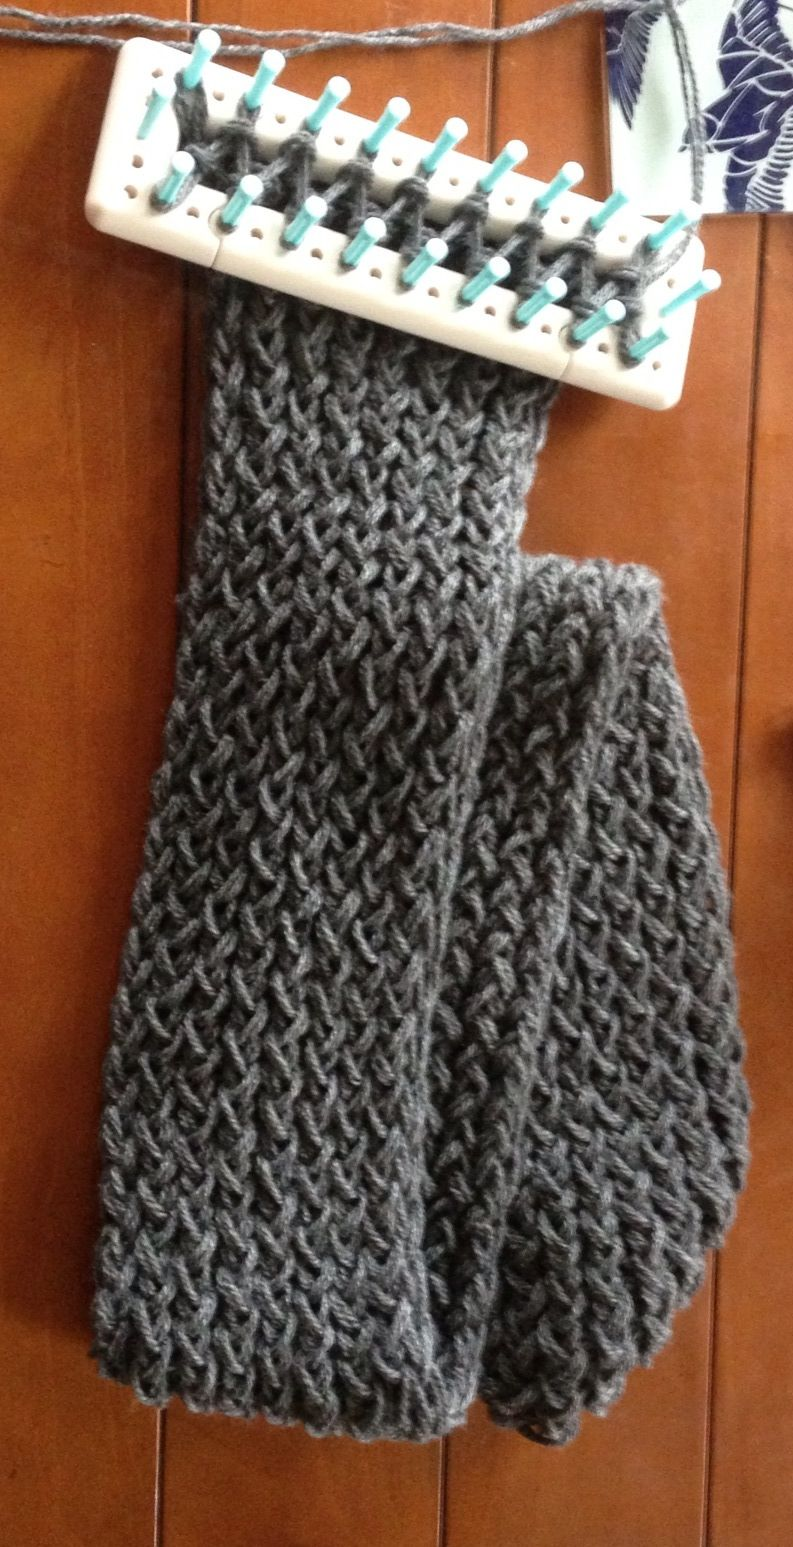 Knitting Loom Scarf : Knitting loom scarf imgkid the image kid has it